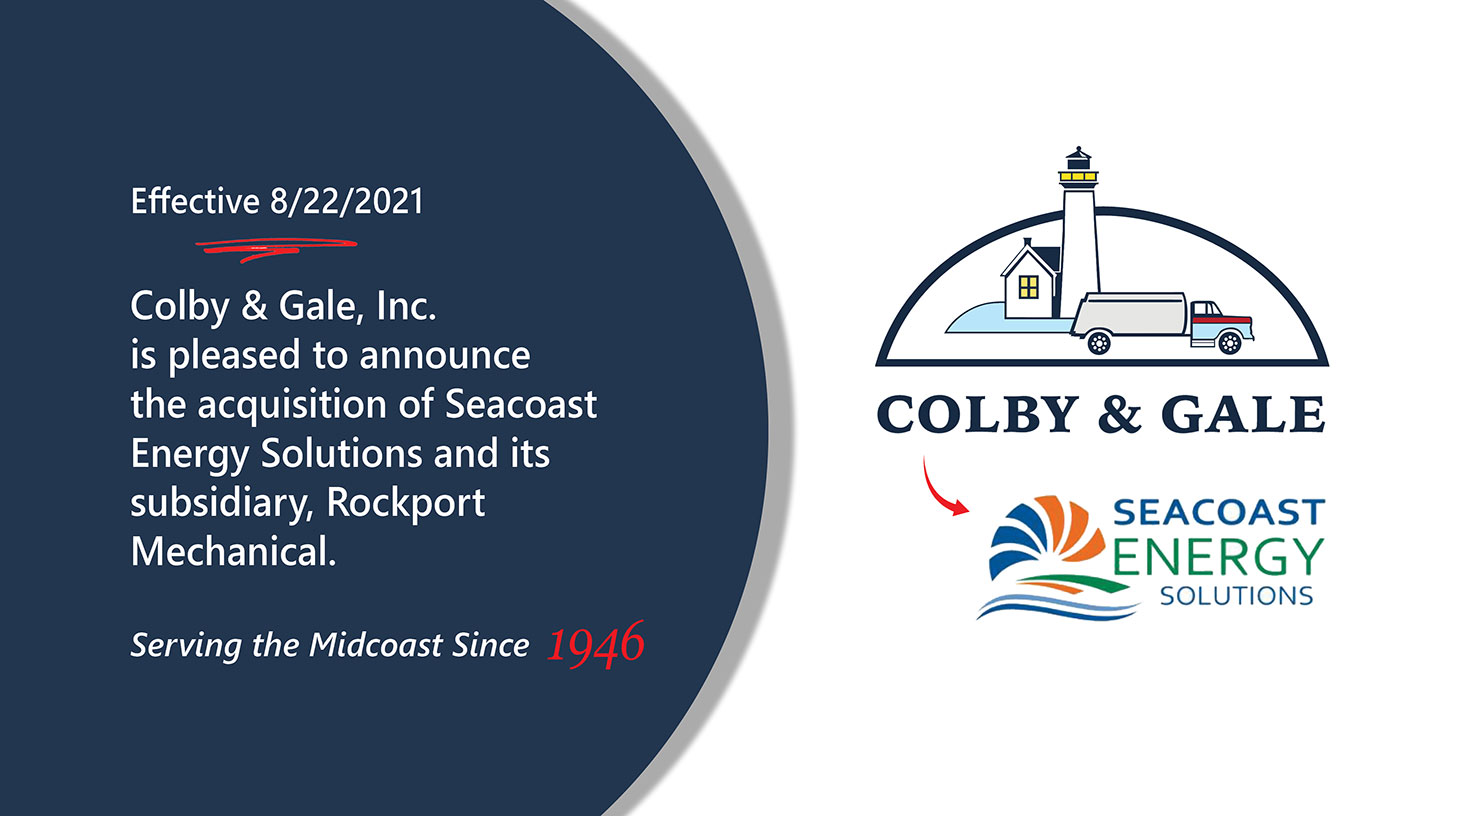 Colby & Gale announcement about their acquisition of Seacoast Energy Solutions effective 8/22/2021